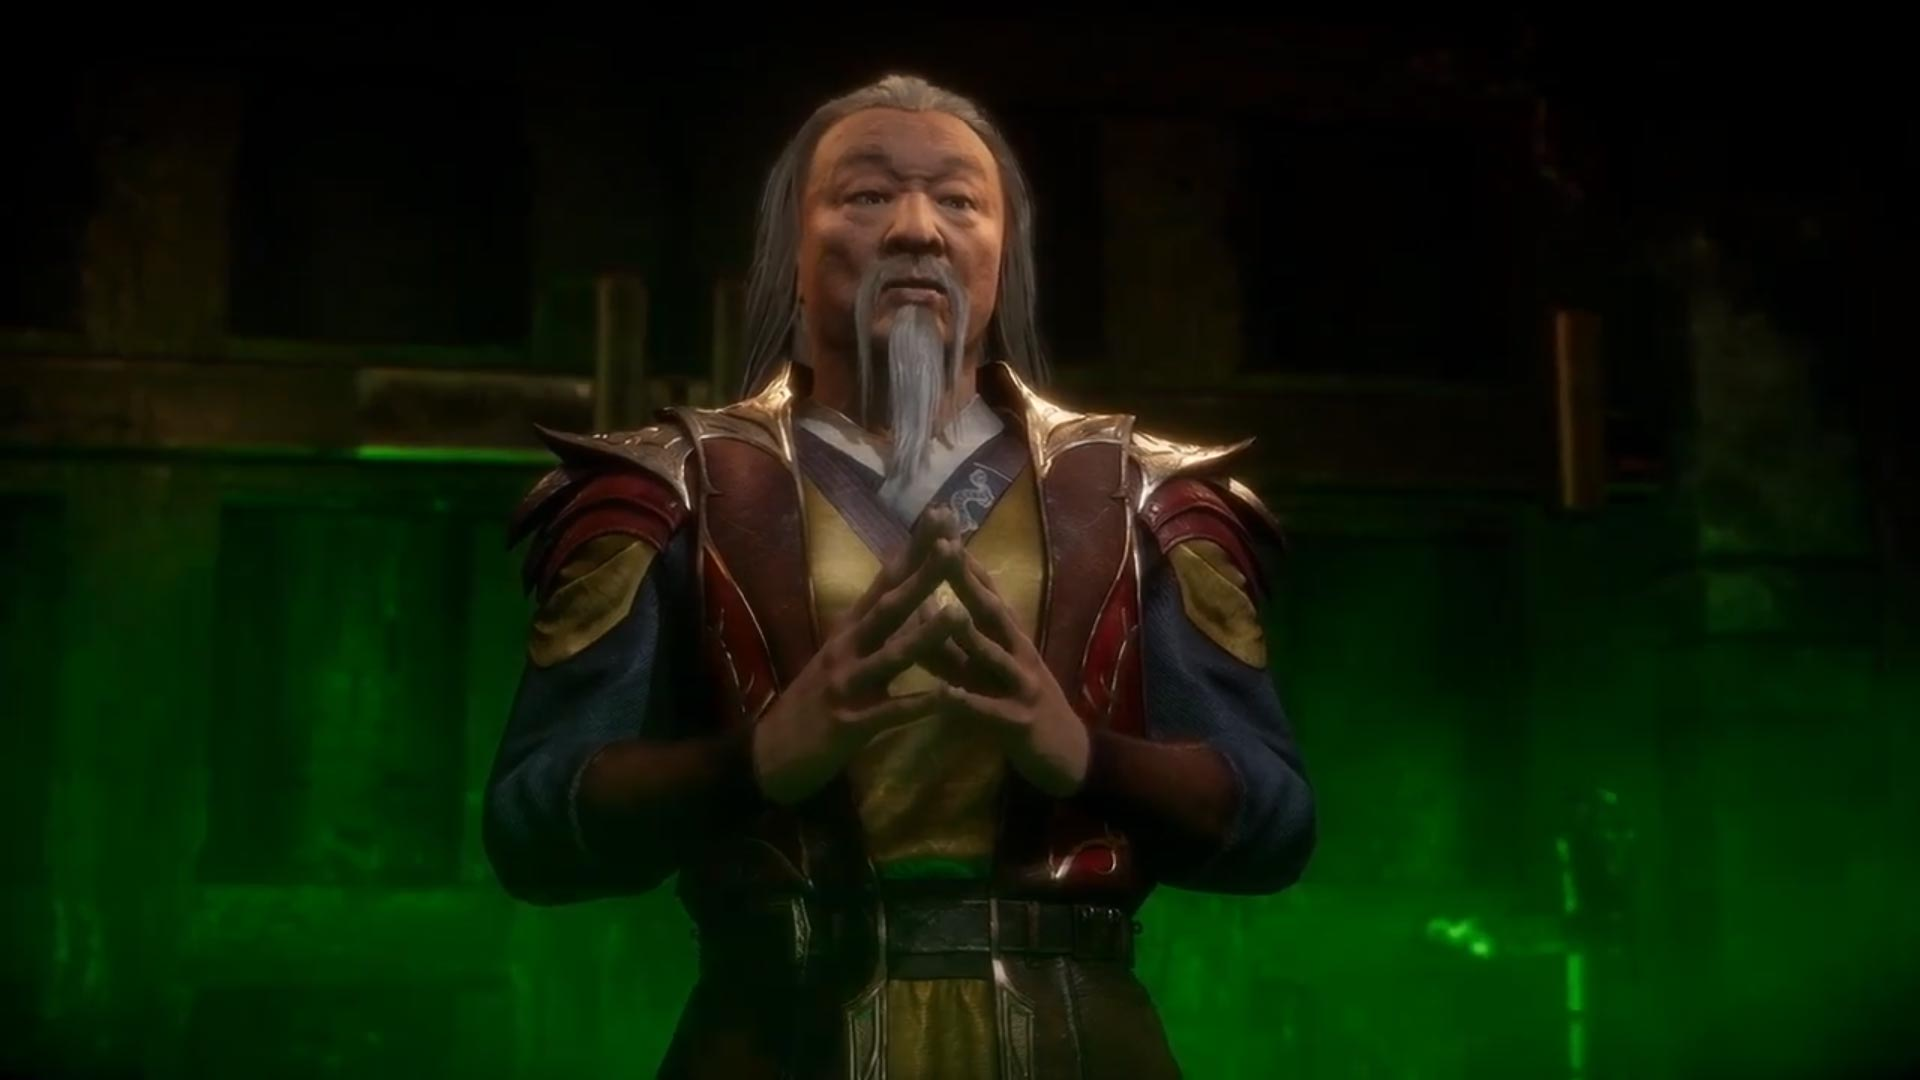 Shang Tsung in Mortal Kombat 11 2 out of 4 image gallery